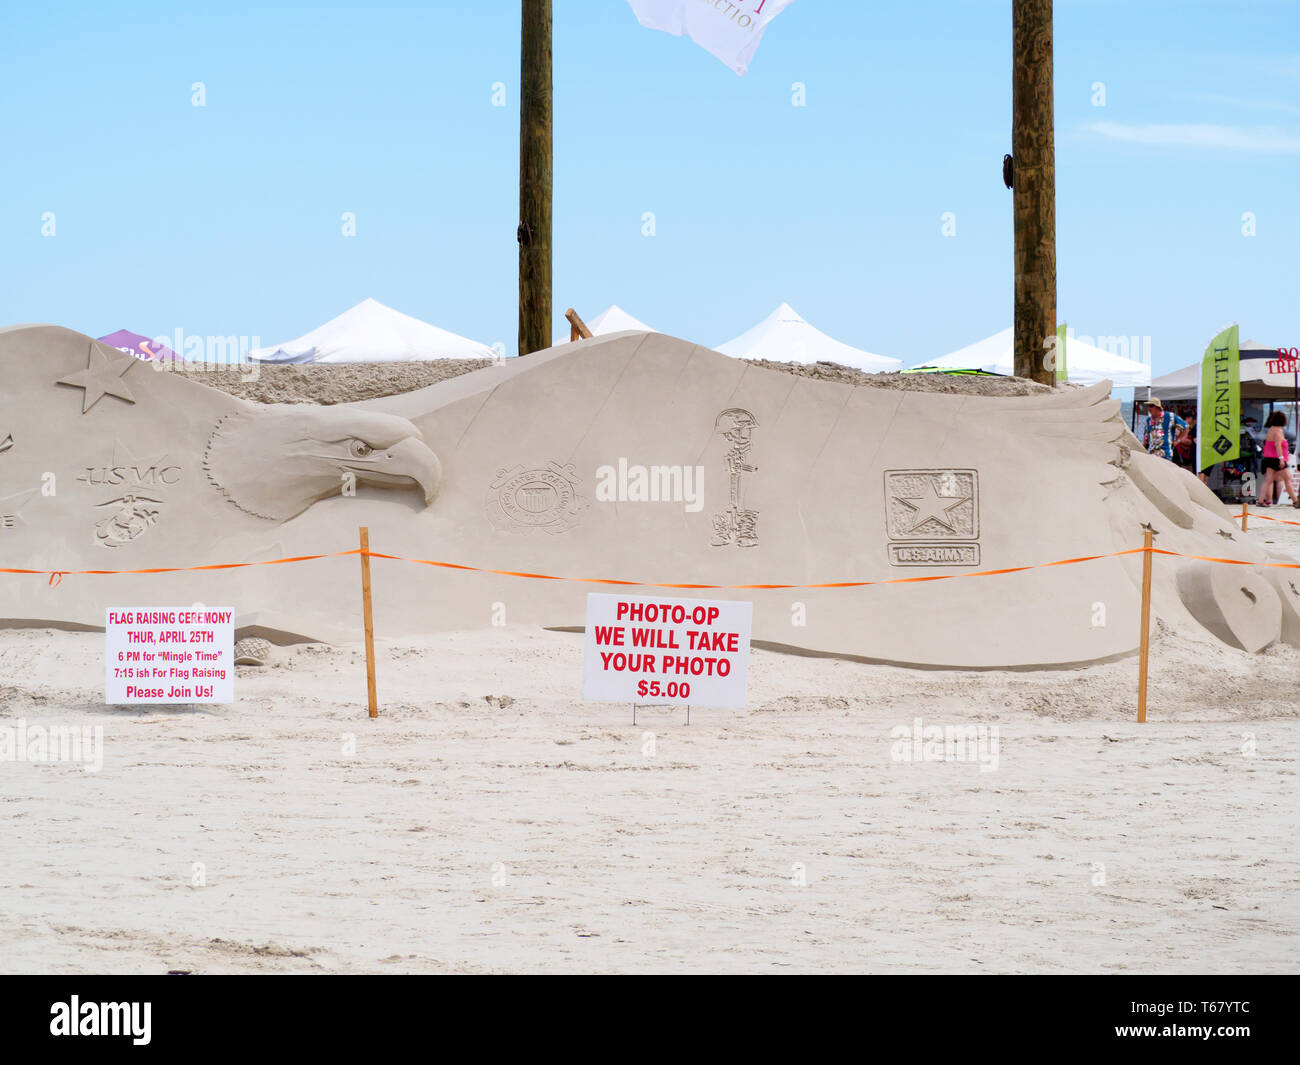 United States Armed Forces logos are featured on a massive eagle sculpted in sand at the 2019 Texas Sandfest in Port Aransas, Texas USA. - Stock Image